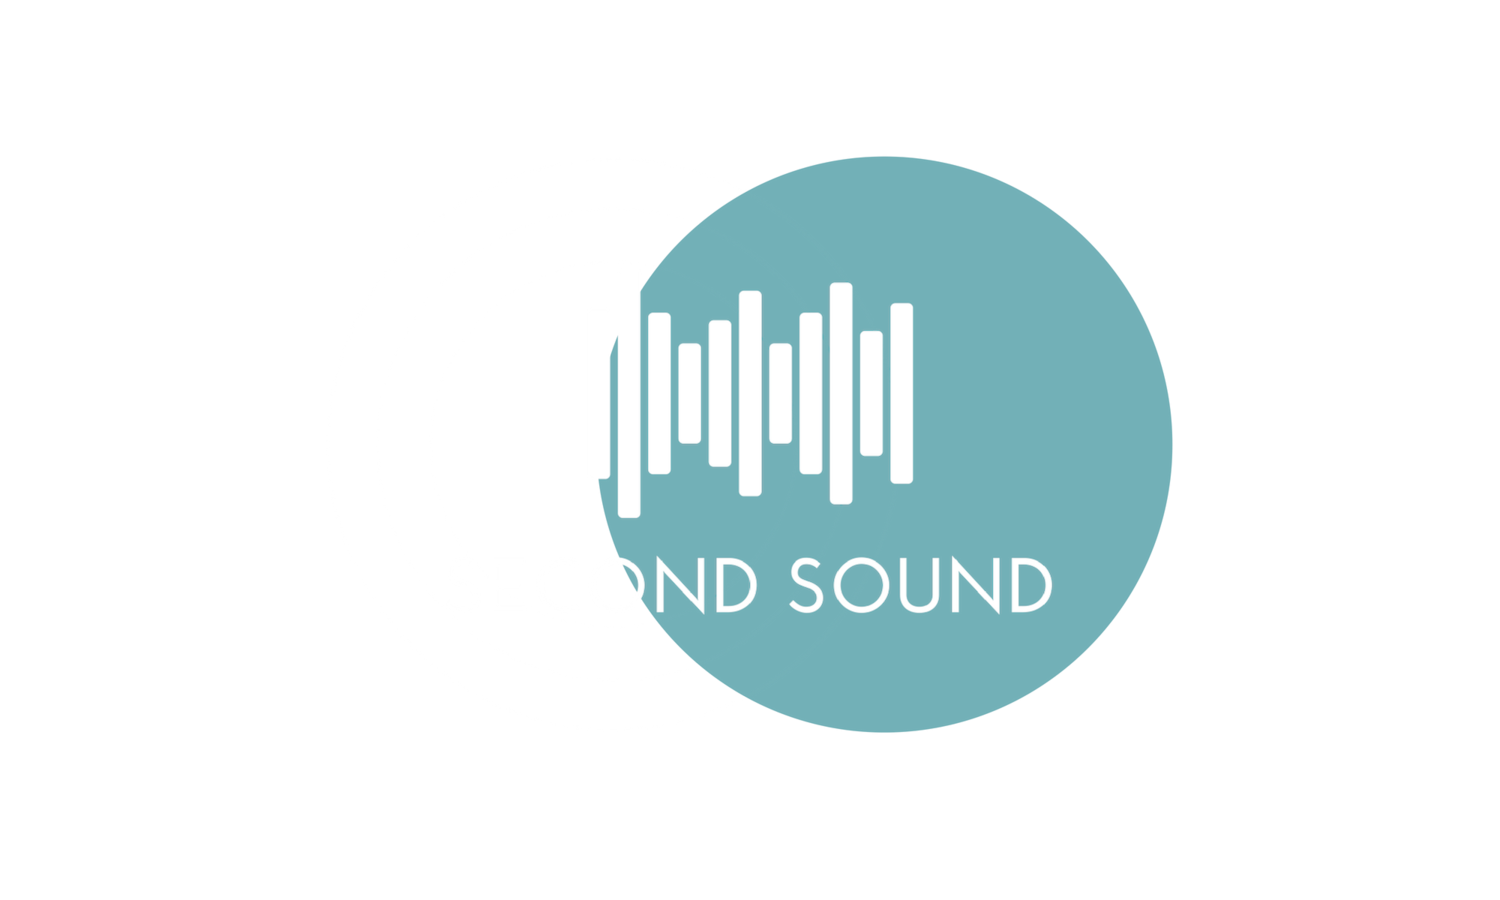 Second Sound